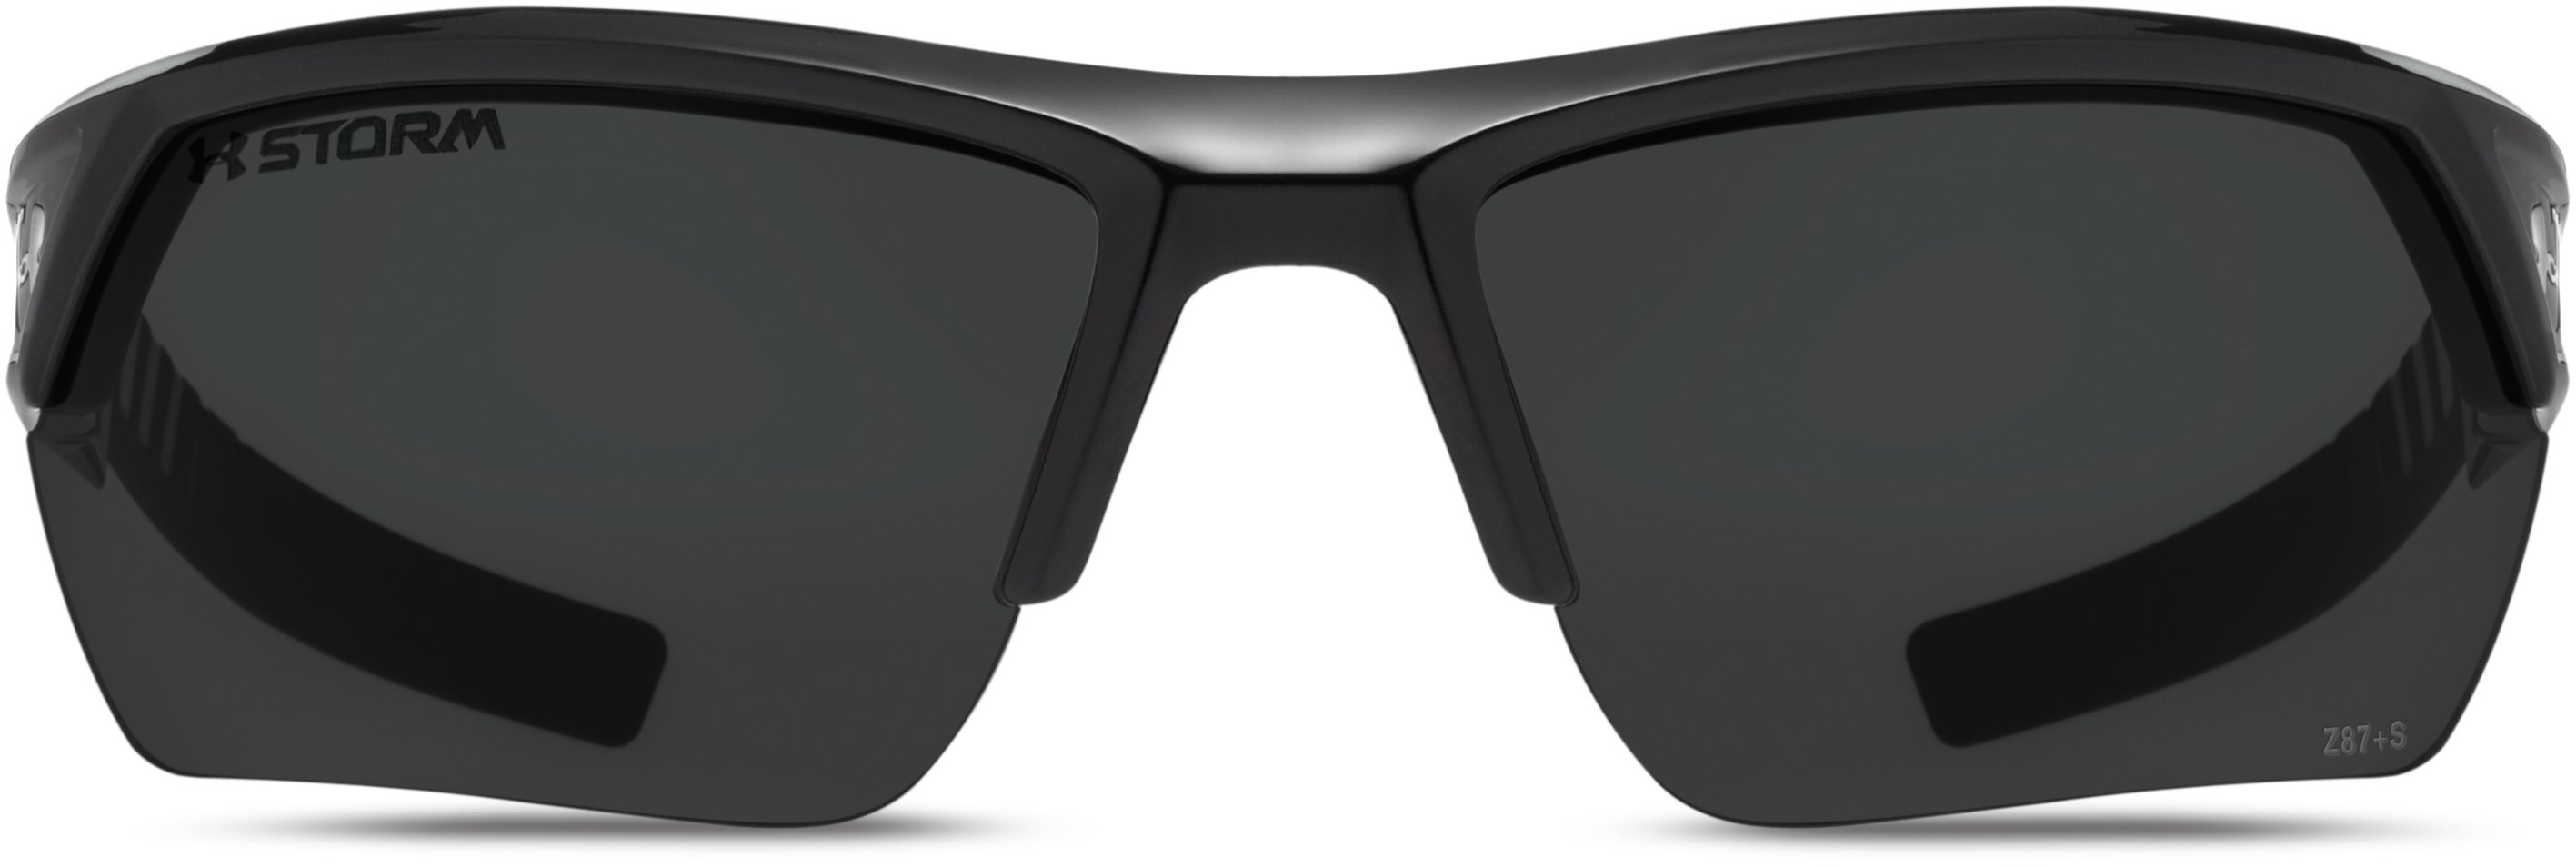 UA Igniter 2.0 Storm Polarized Sunglasses, Satin Black, undefined